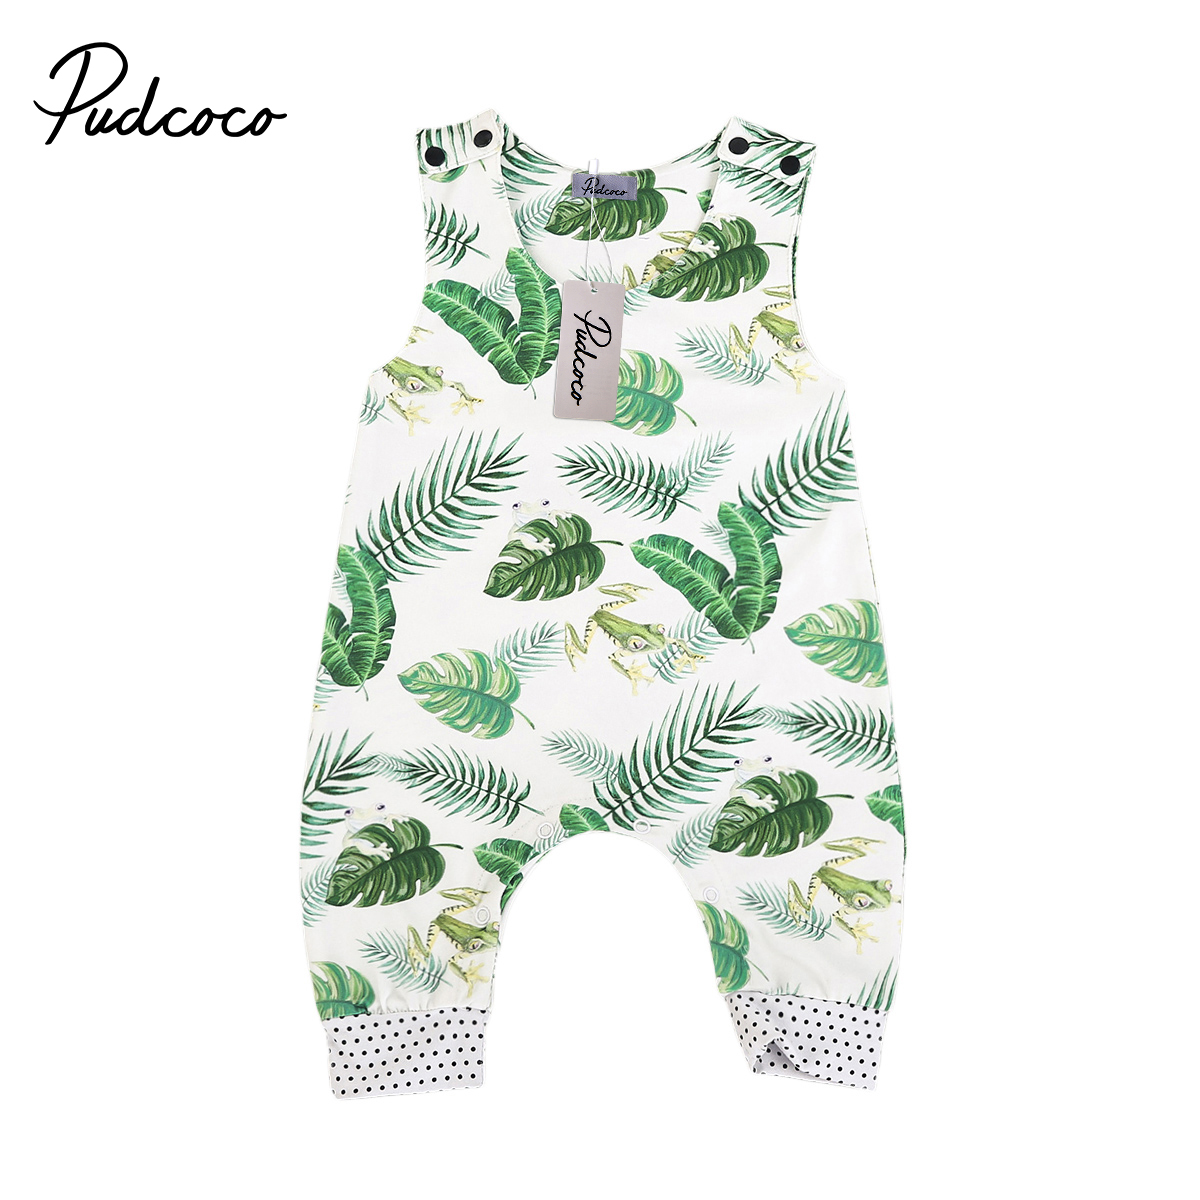 Pudcoco Newborn Kids Baby Boys Girls Sleeveless Floral Romper Playsuit Jumpsuit One-Pieces Outfits Set Clothes